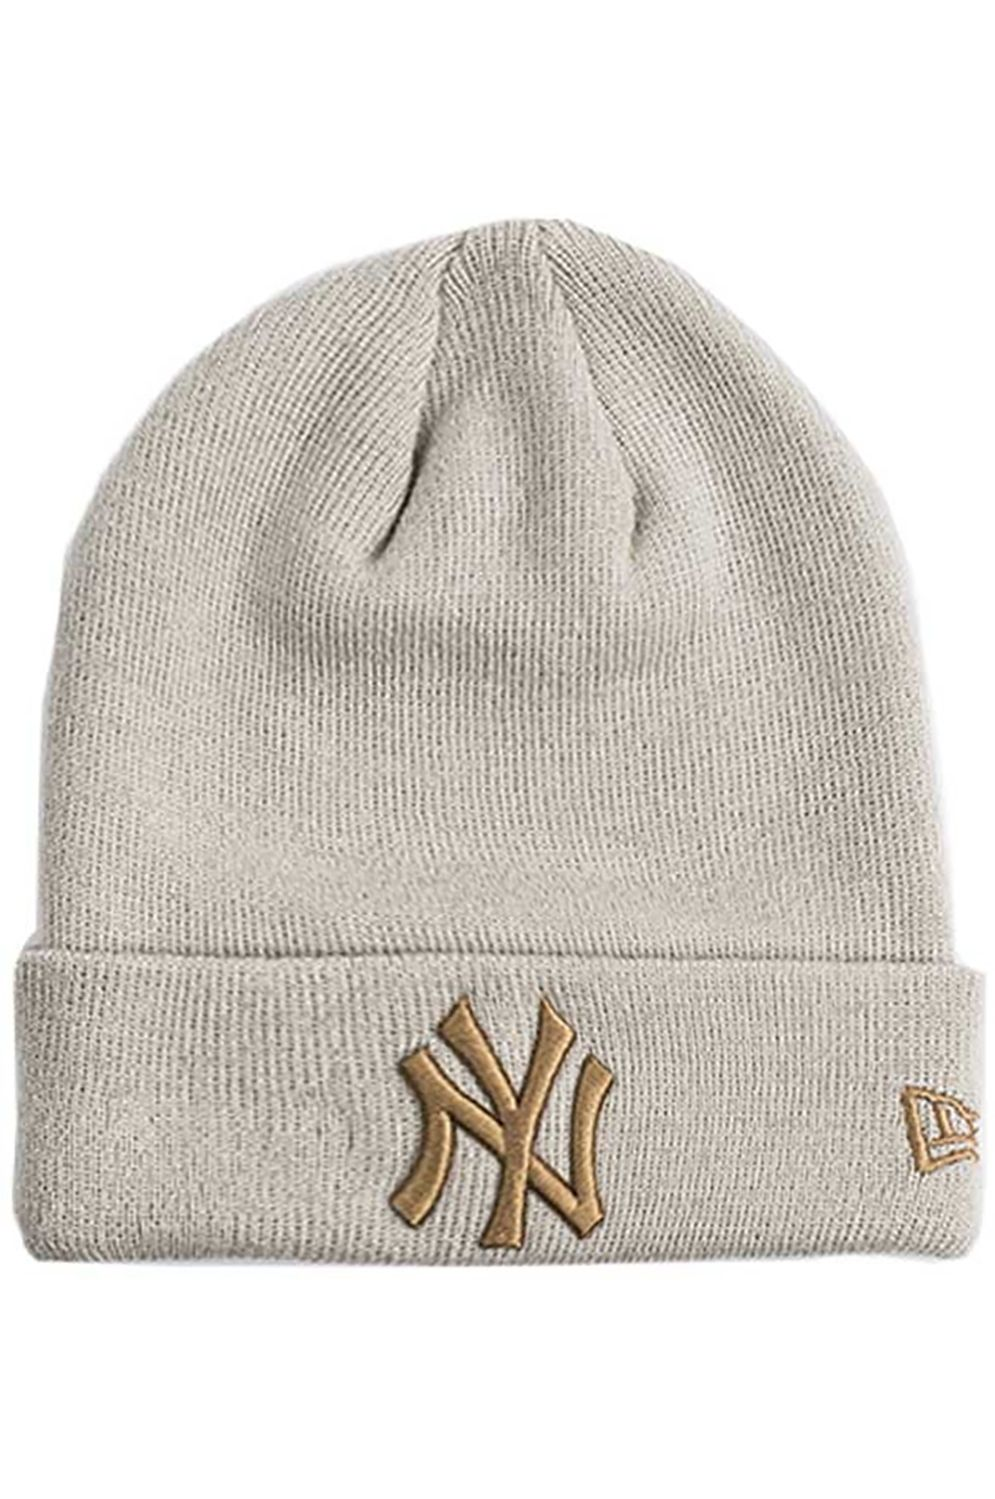 New Era Beanie LEAGUE ESSENTIAL CUFF KNIT Stone/Whe